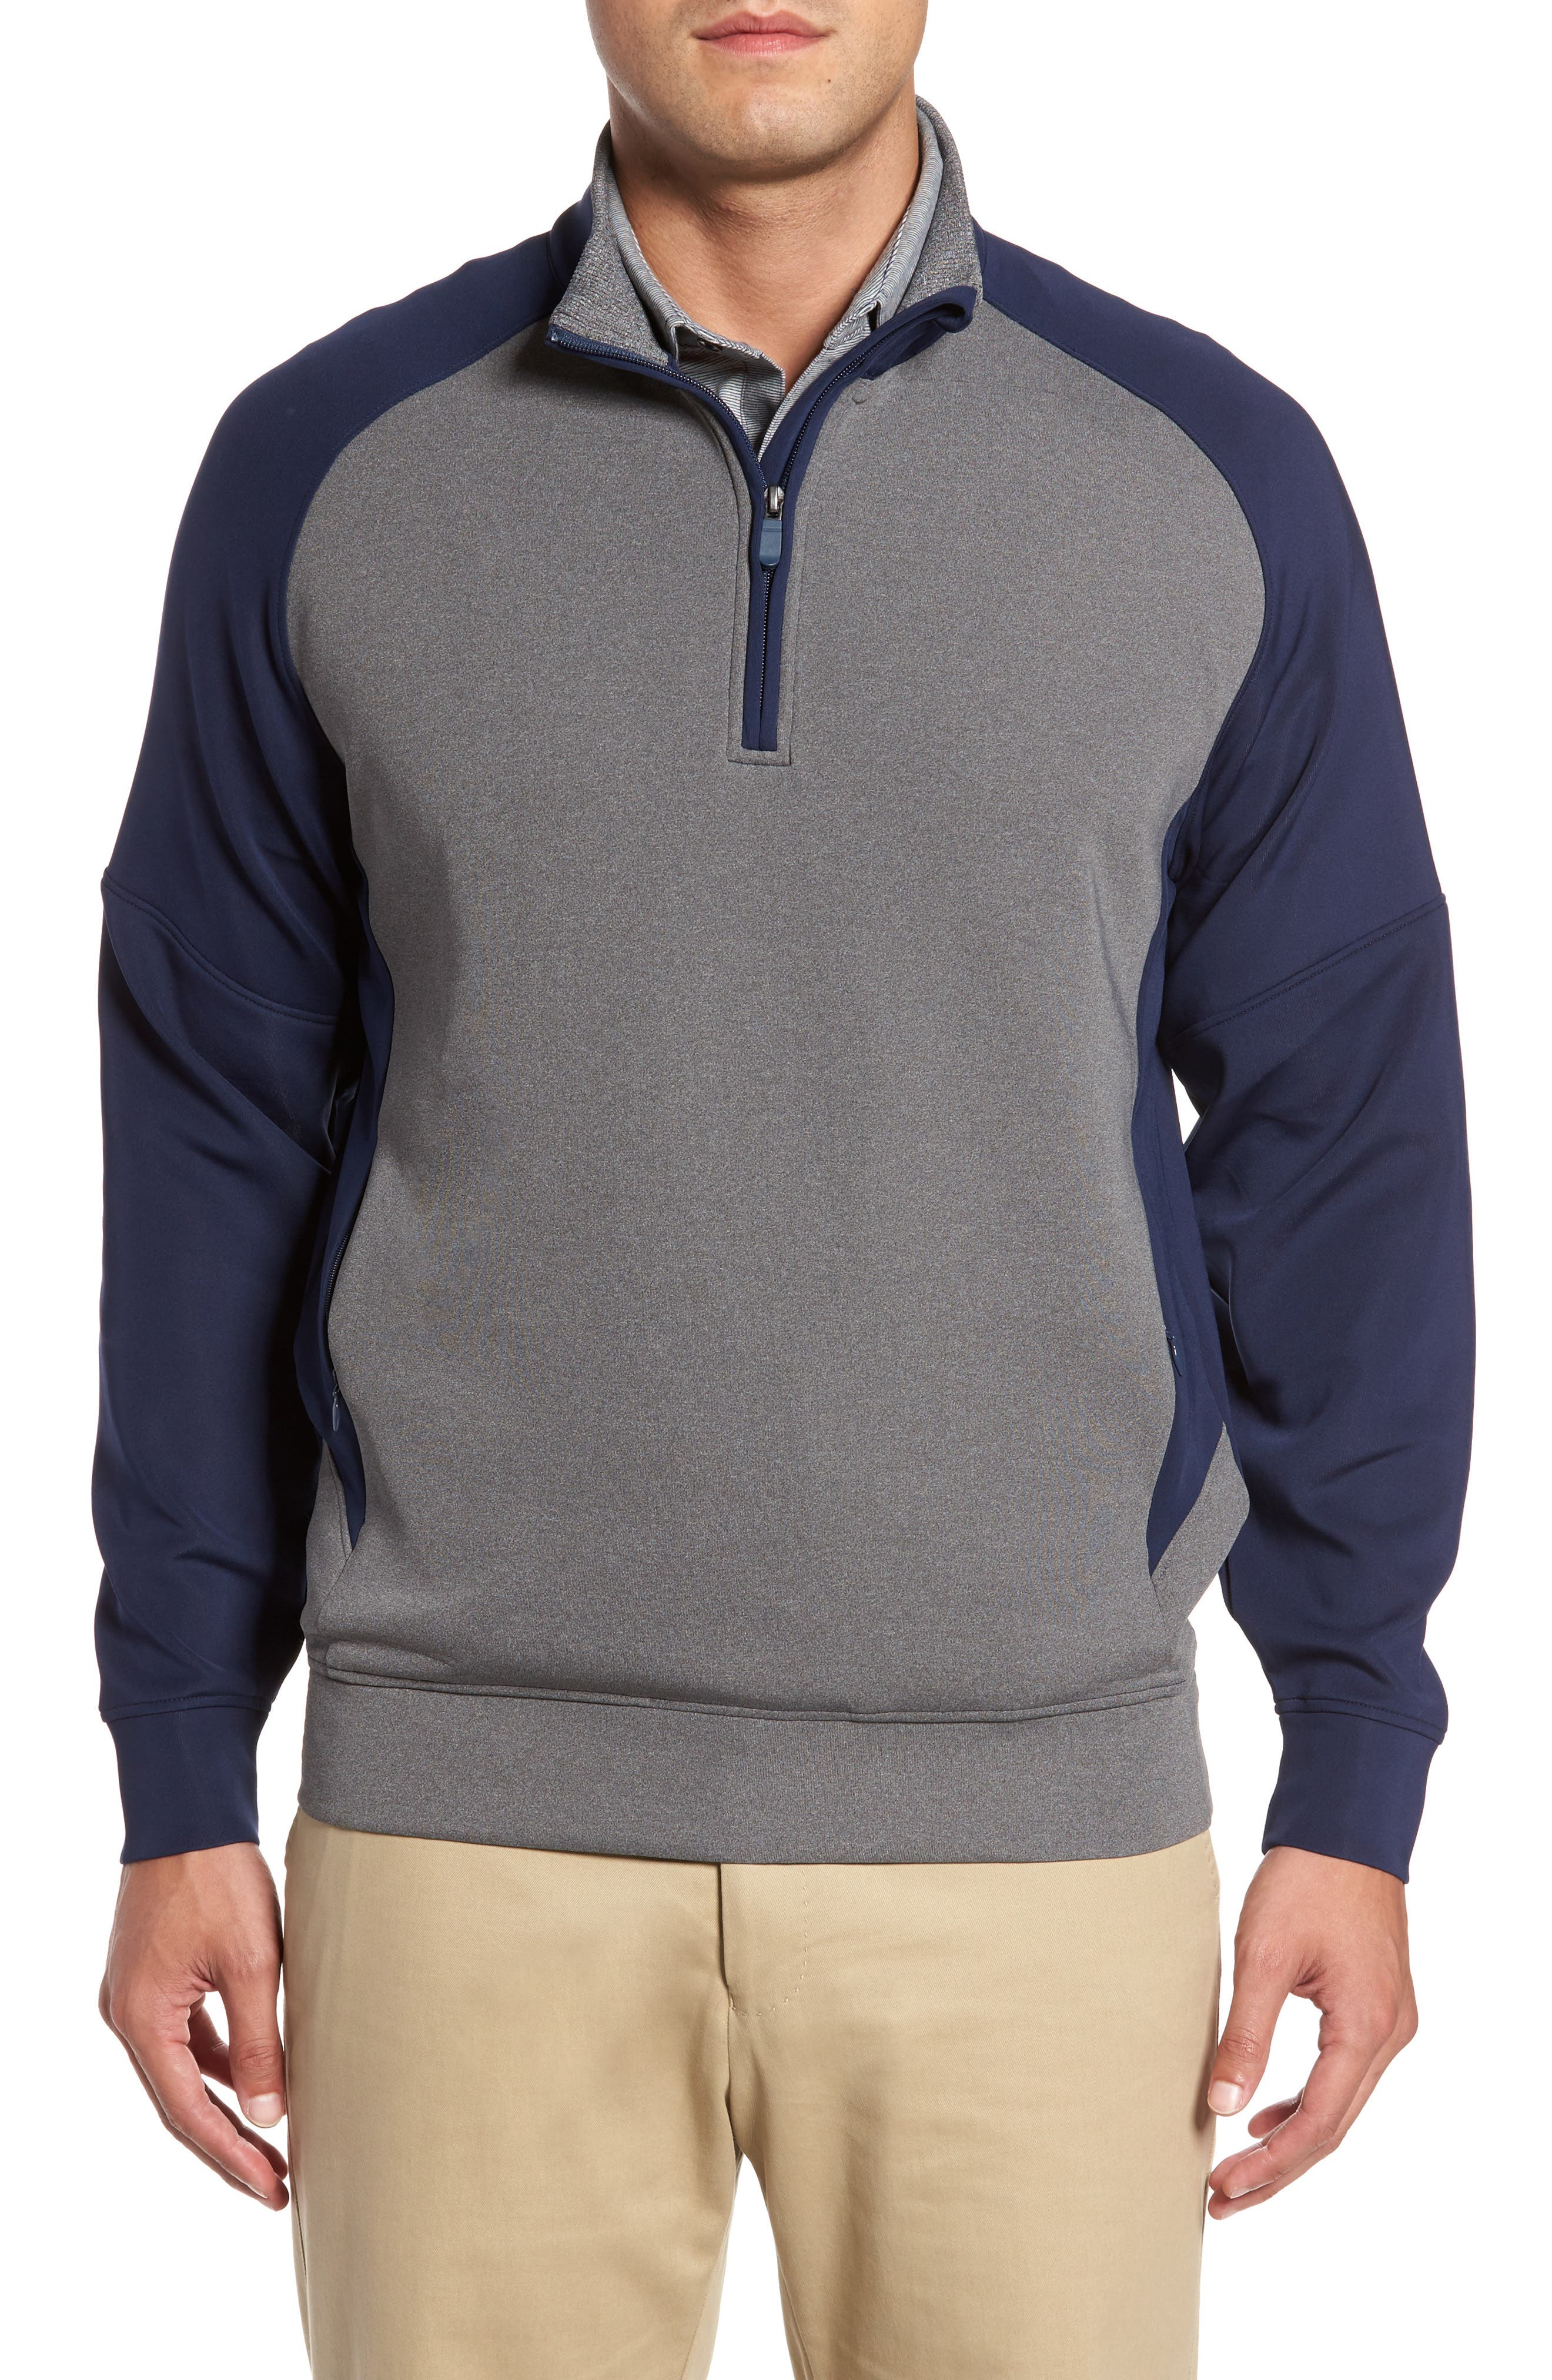 Bobby Jones R18 Chapman Tech Quarter Zip Pullover